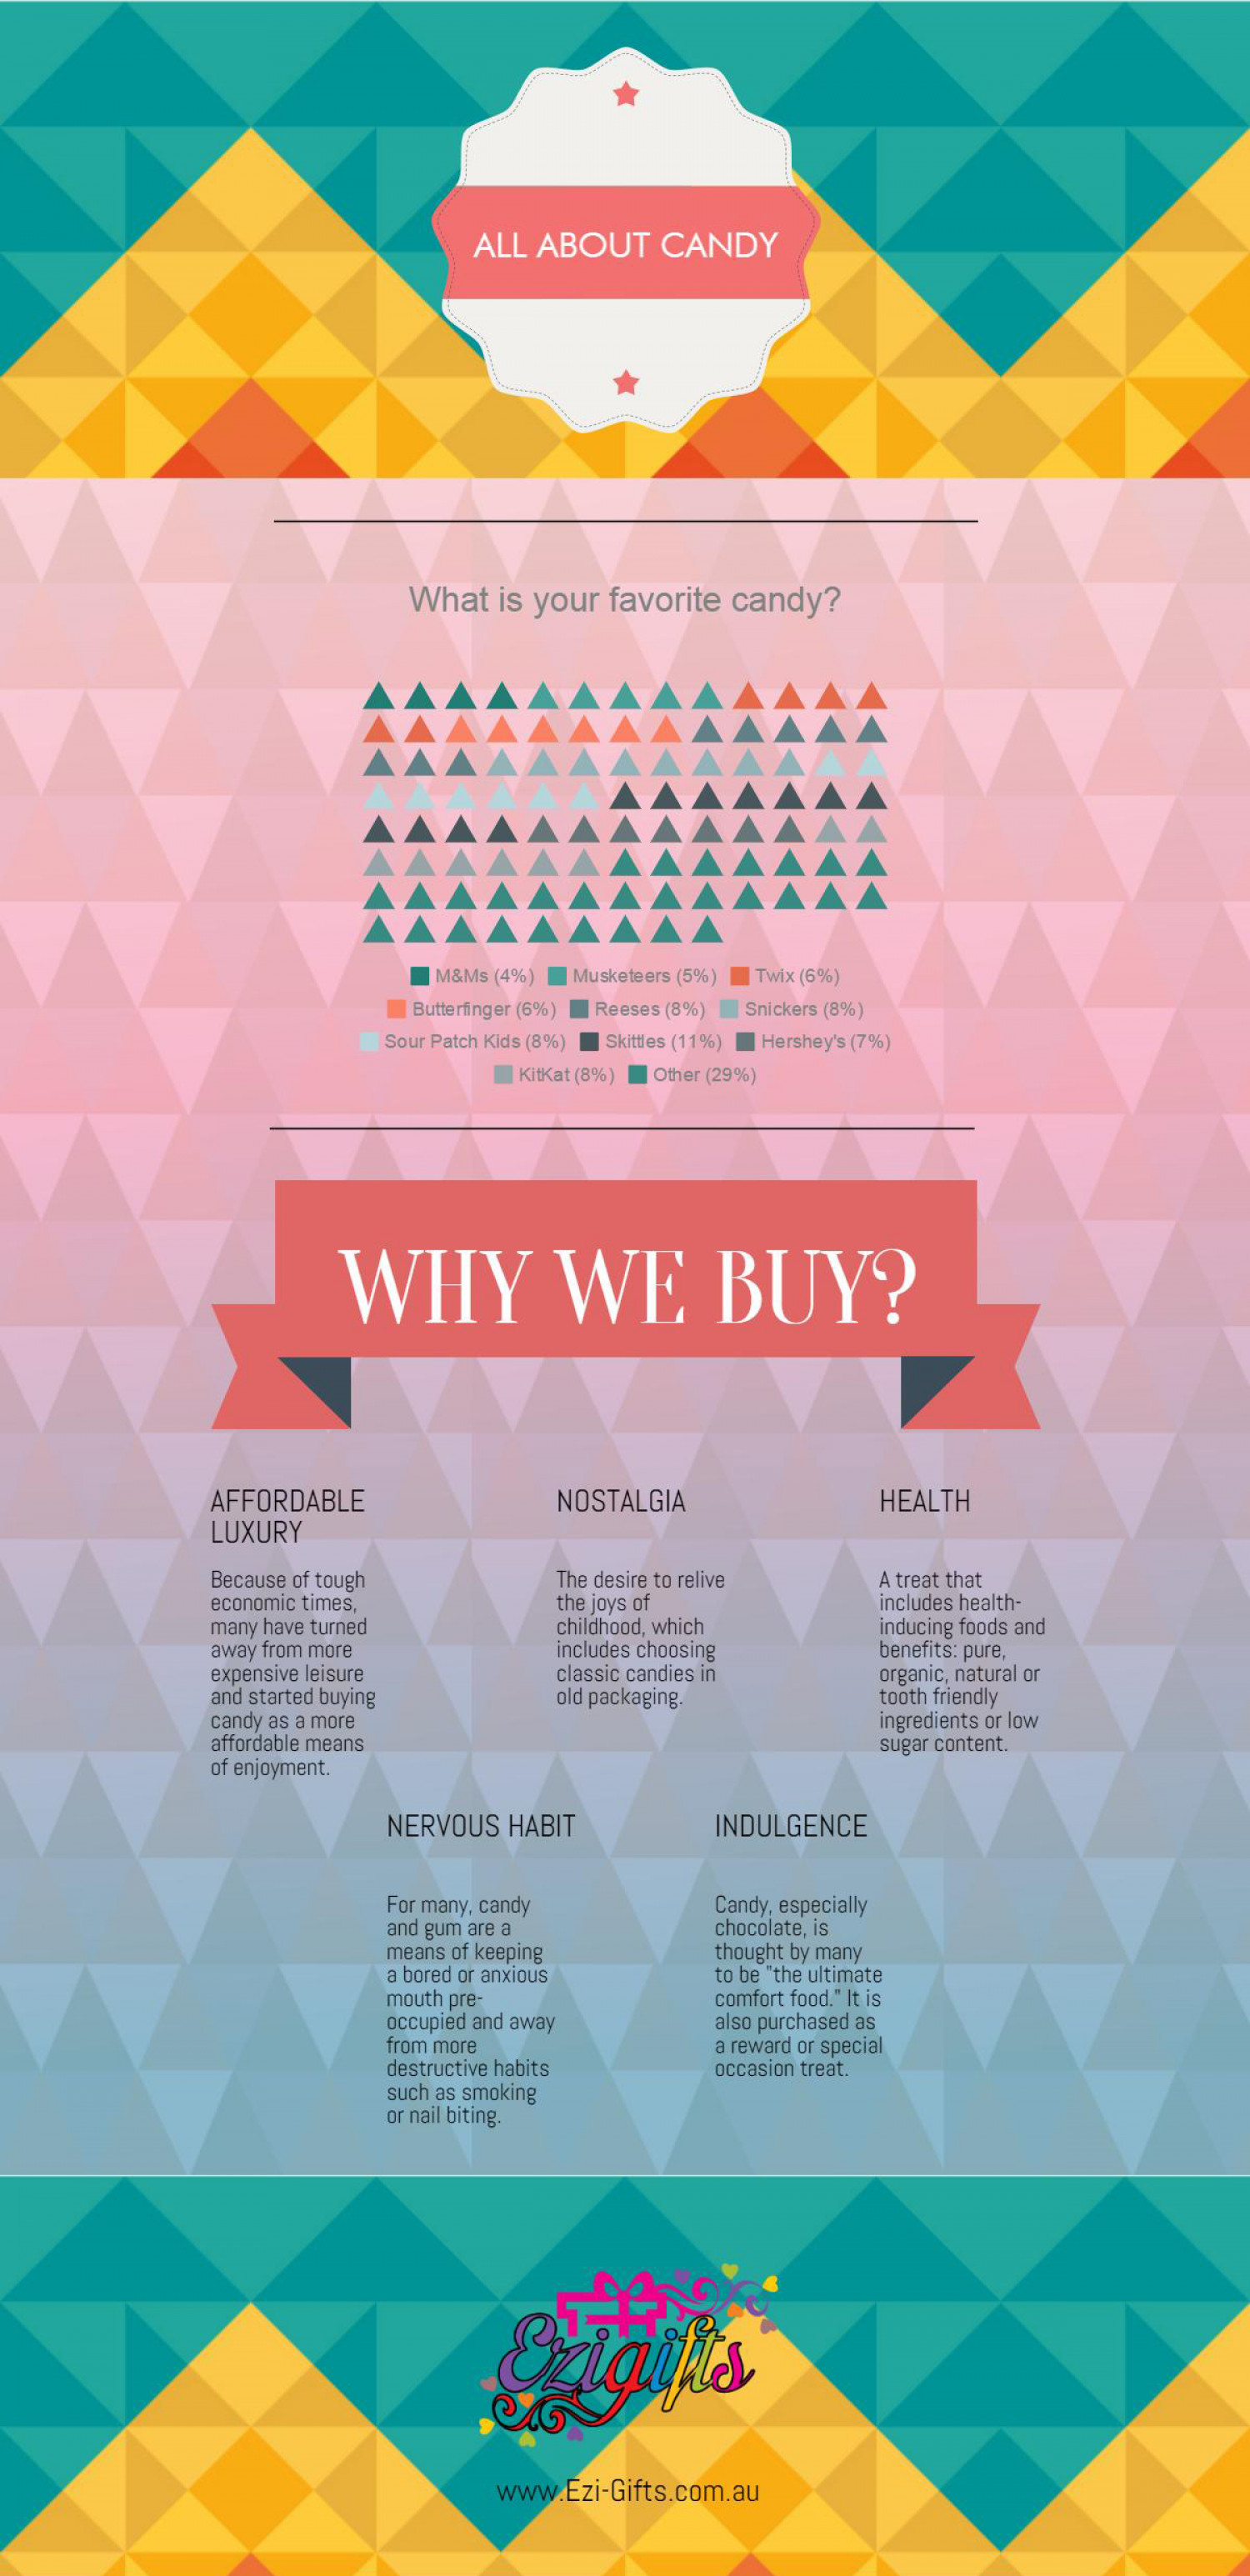 All About Candy Infographic